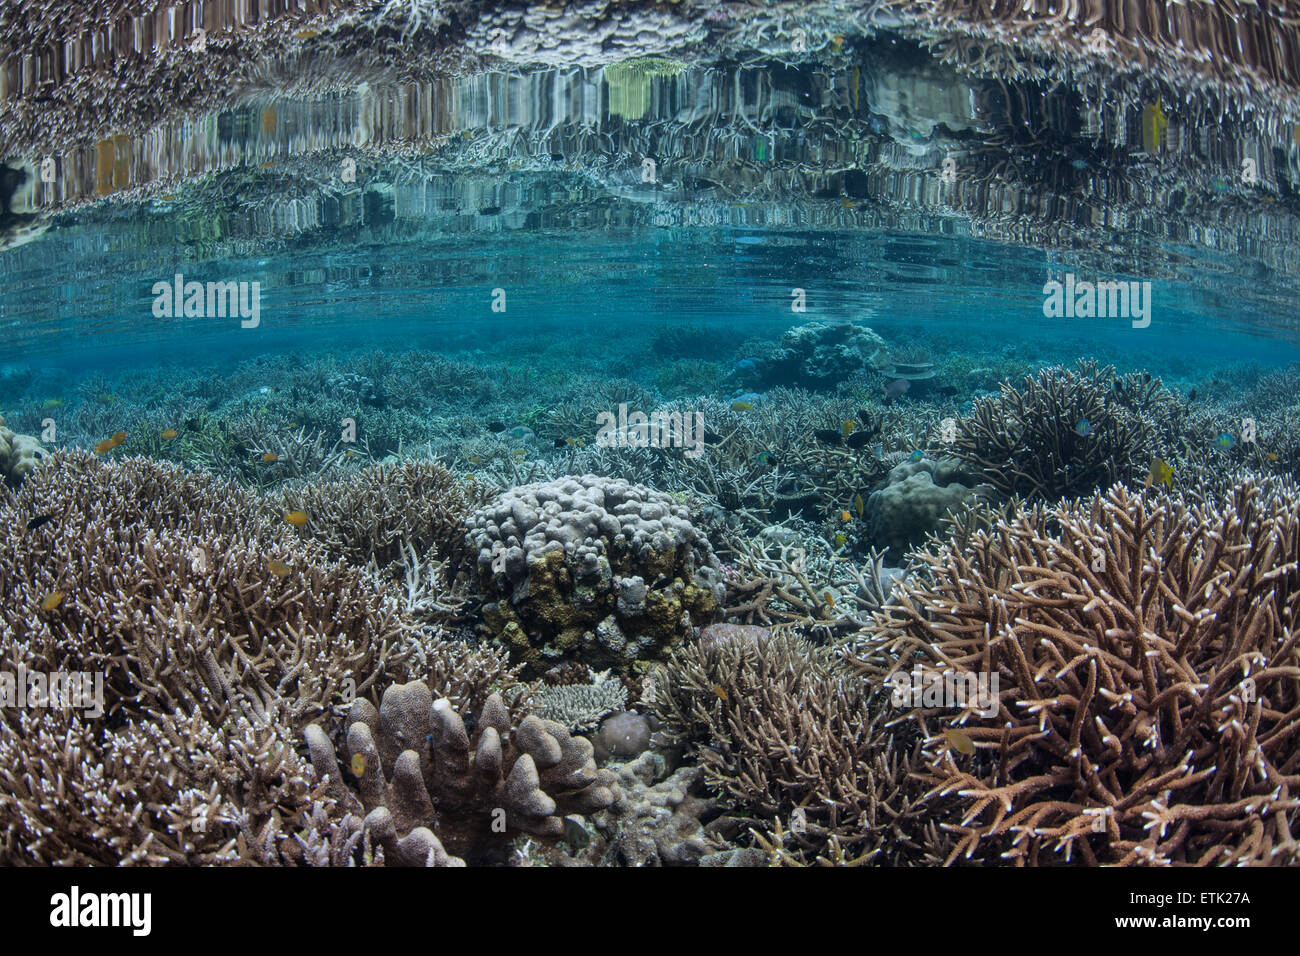 A beautiful coral reef grows in shallow water in Raja Ampat, Indonesia. This area is home to a great diversity of - Stock Image